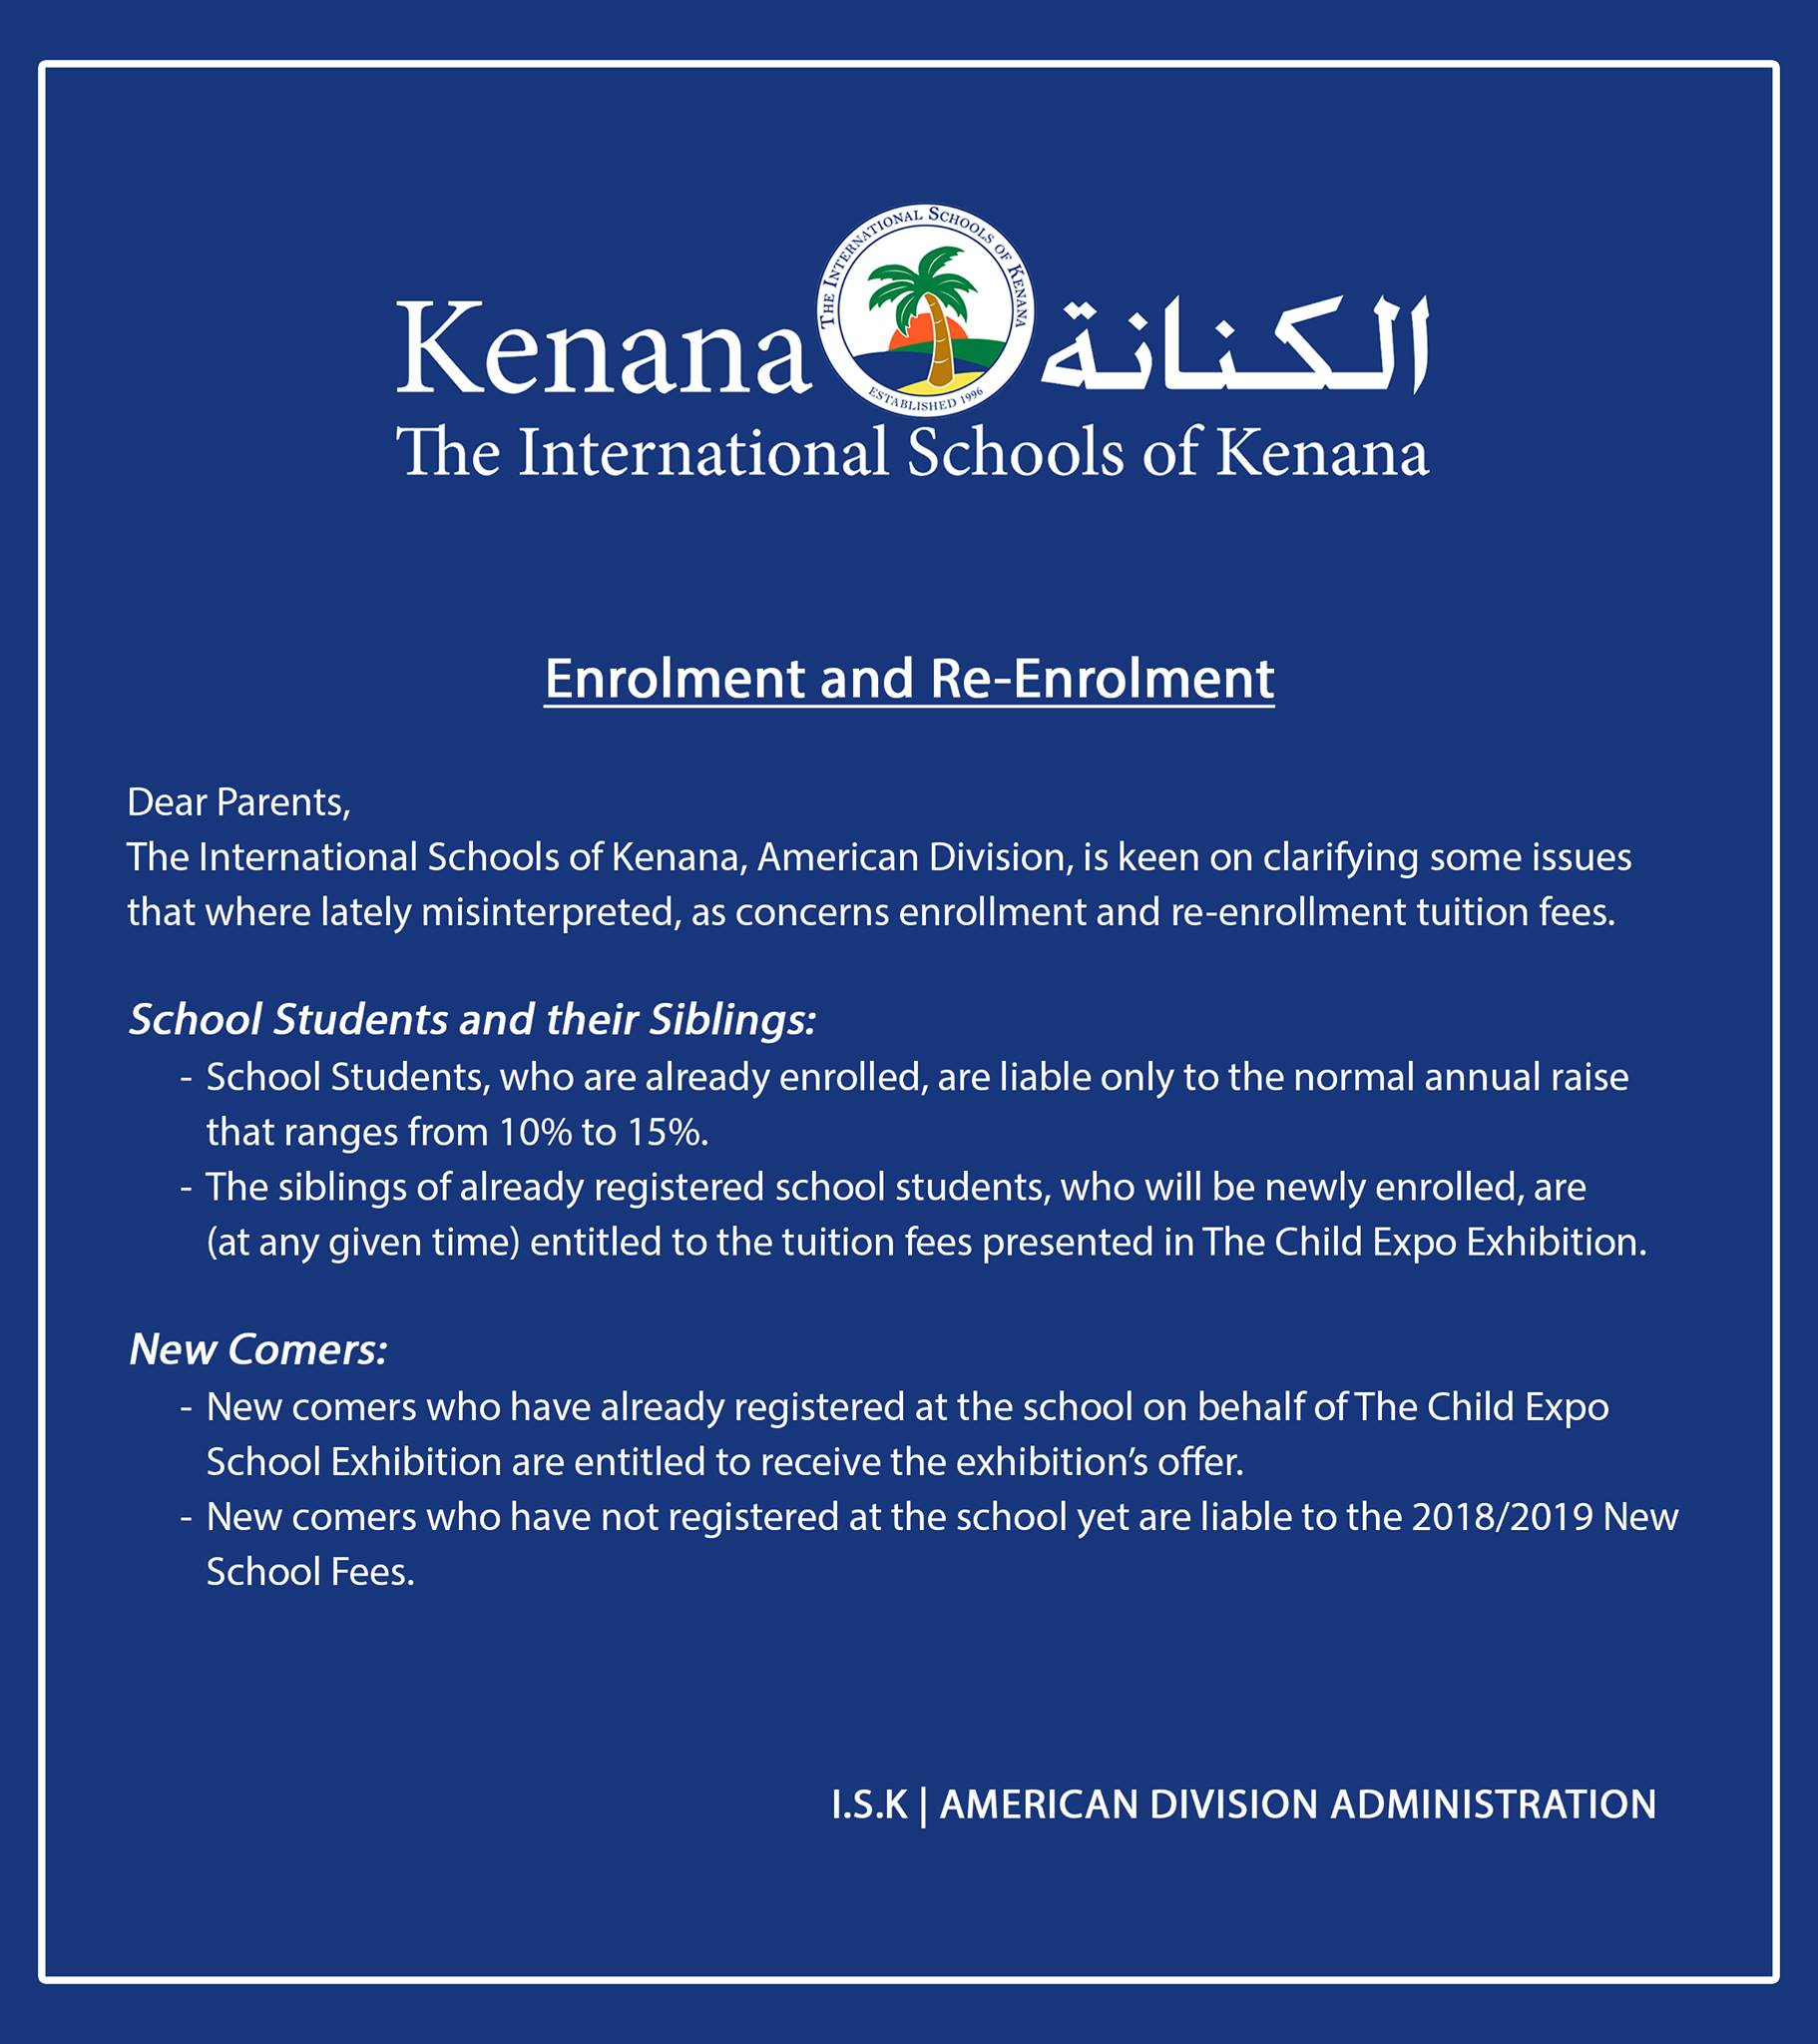 International schools of kenana | American Division - Enrollment and Re-Enrollment